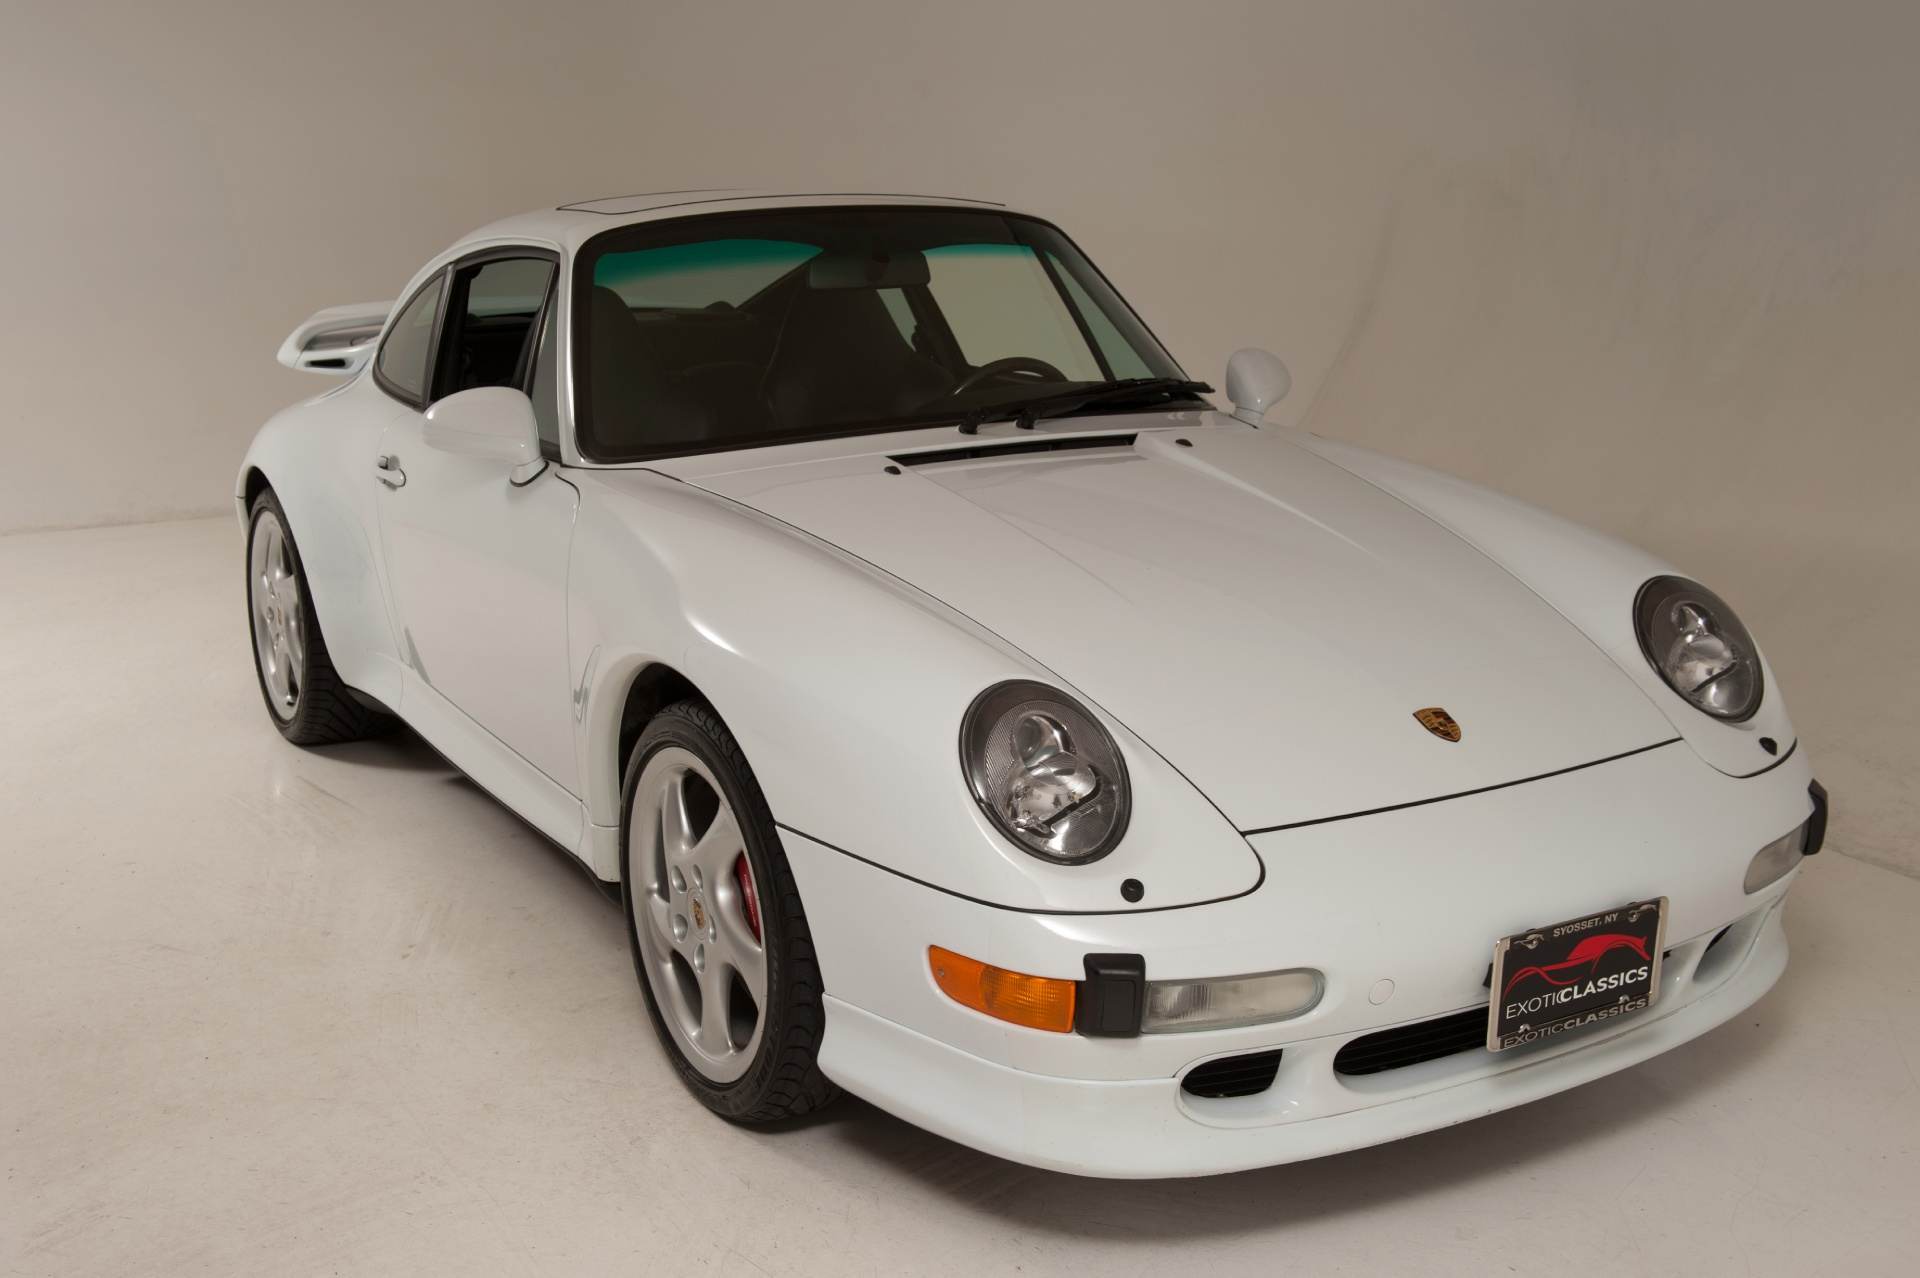 1998 Porsche 911 Carrera C4S Coupe Champion Motors International l